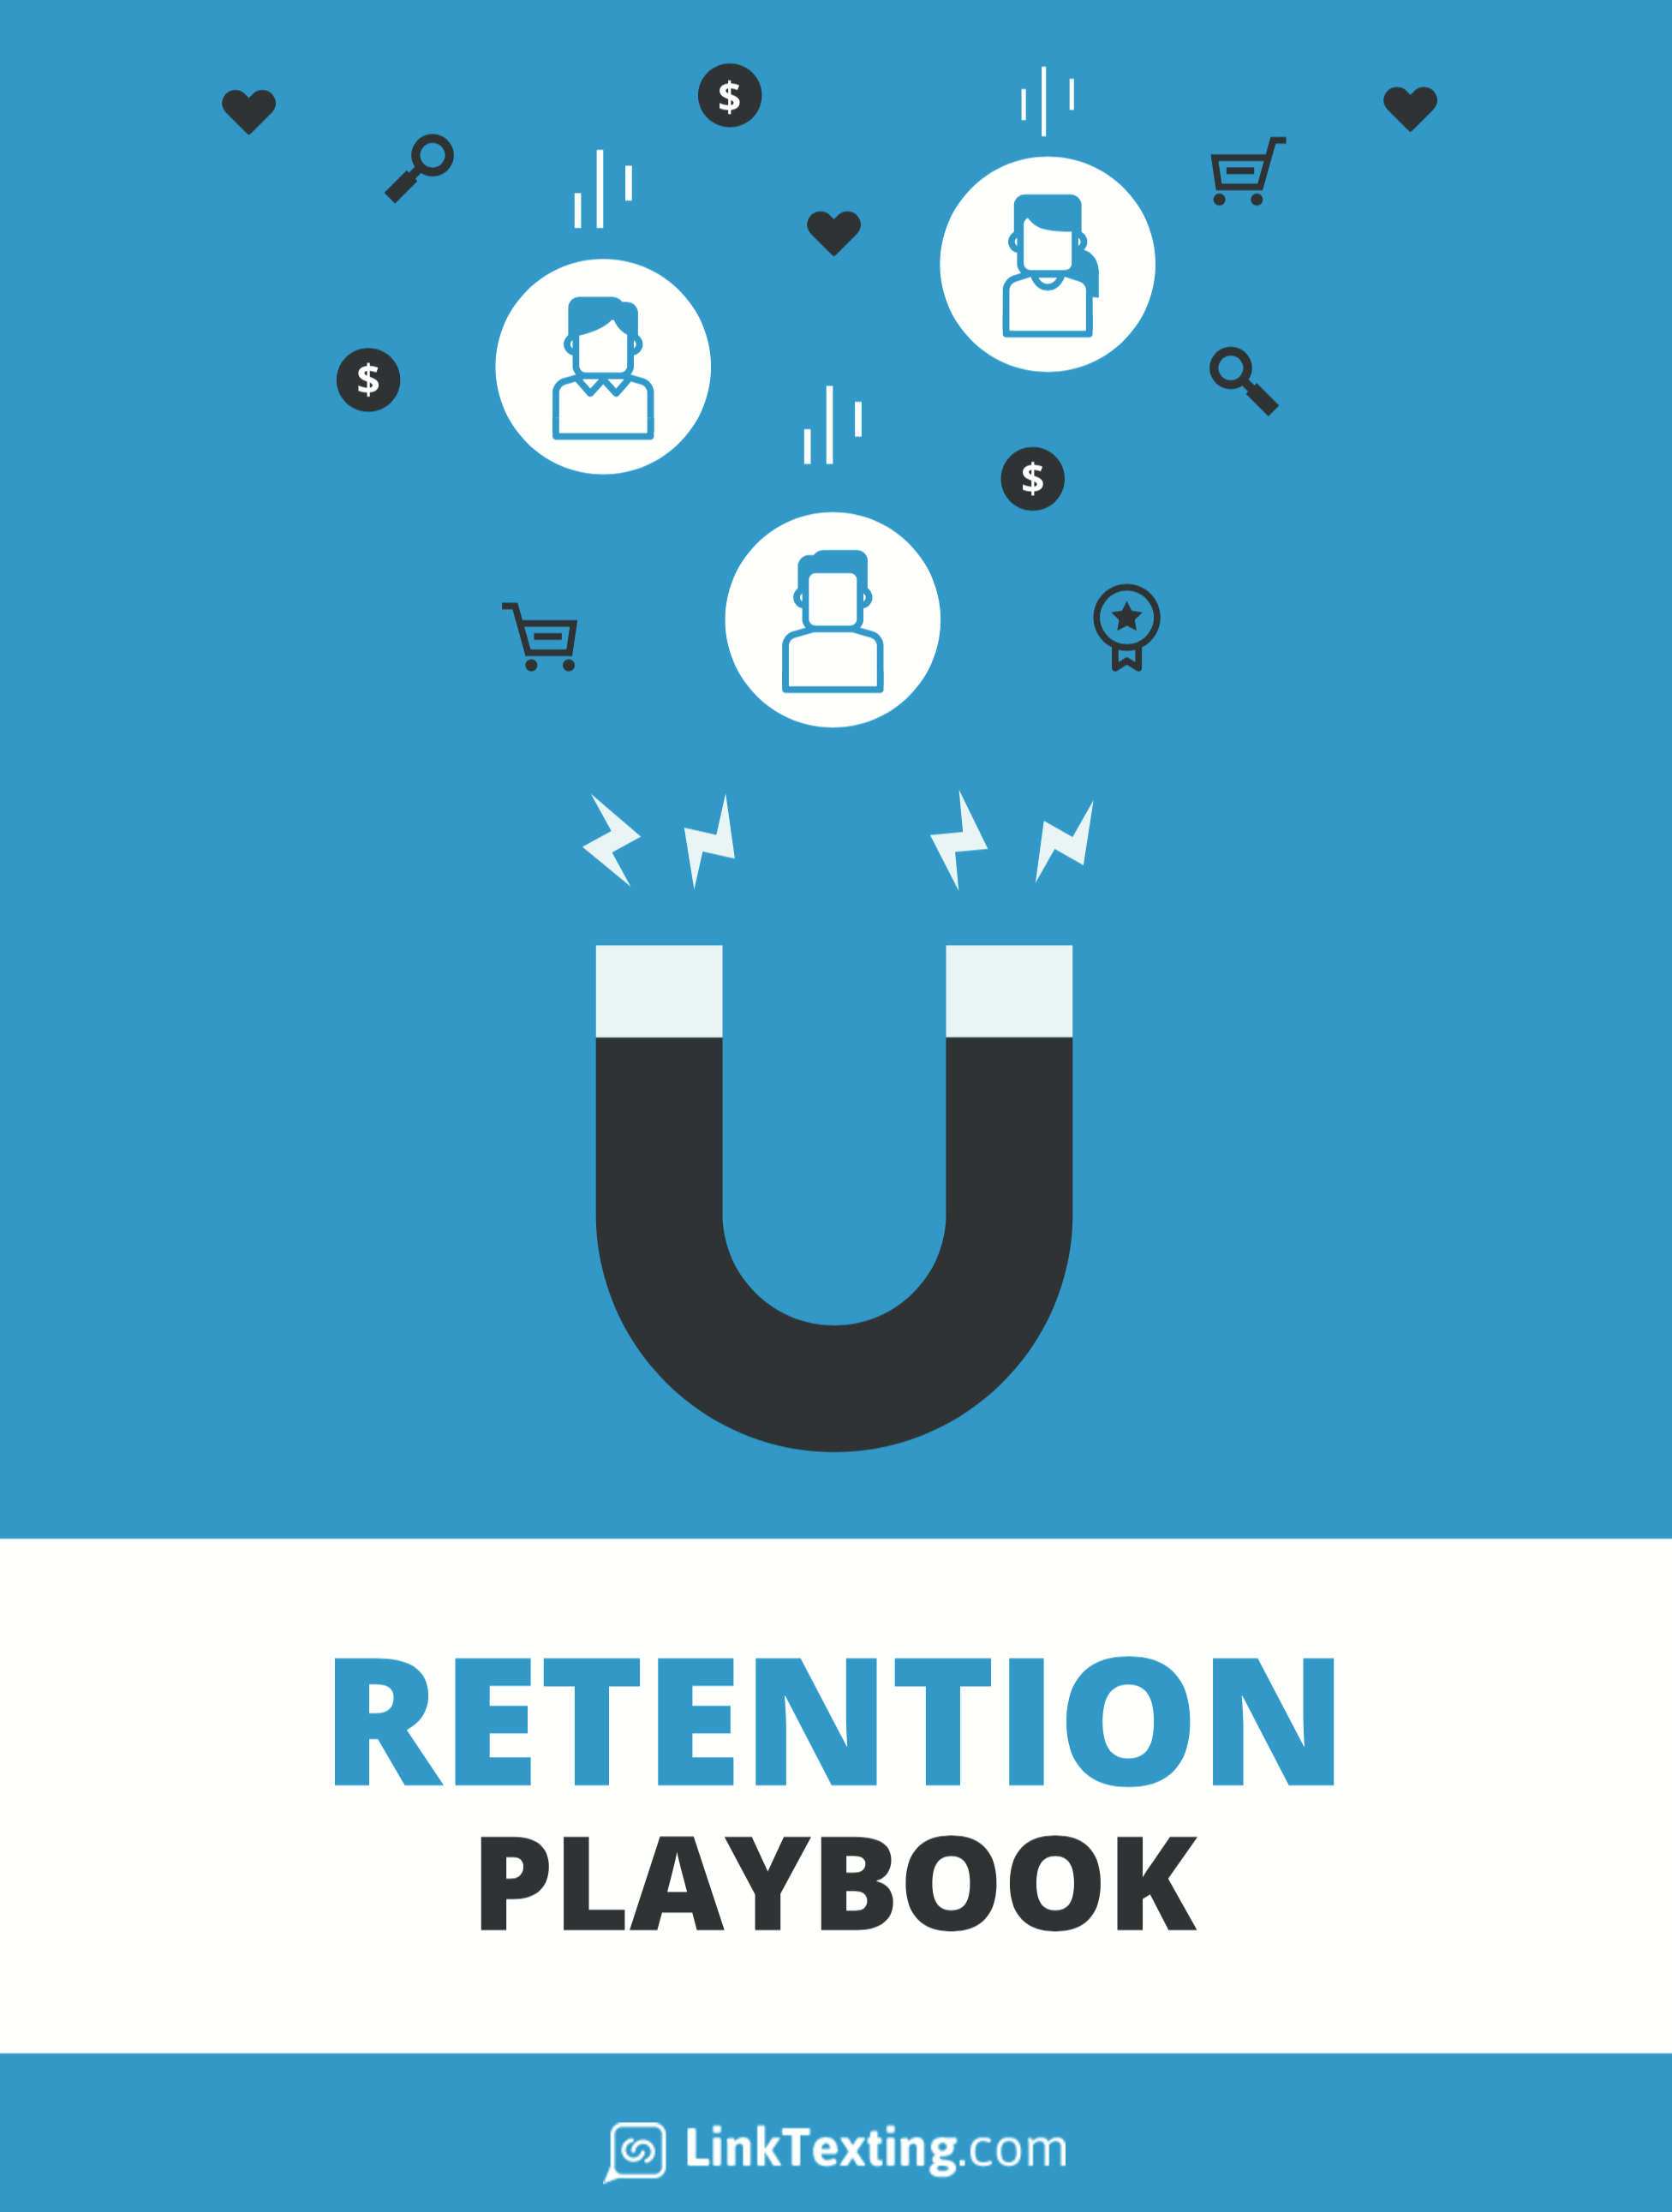 Retention Playbook